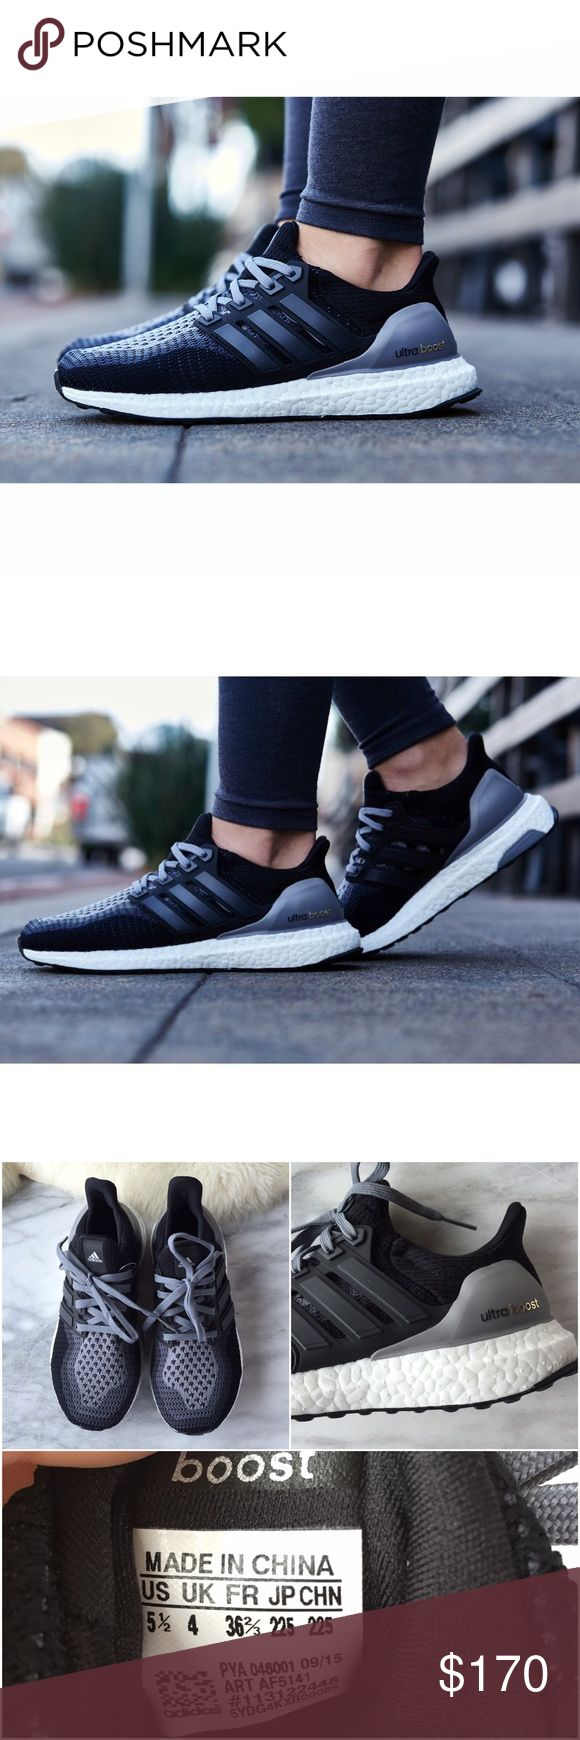 Adidas Ultra Boost Knit Running Shoes •Authentic Adidas Ultra Boost Running shoes. Style AF5141  •Women's size 5.5   •Display shoe, like new condition.  •NO TRADES/PAYPAL/MERC/HOLDS/NONSENSE. Adidas Shoes Athletic Shoes